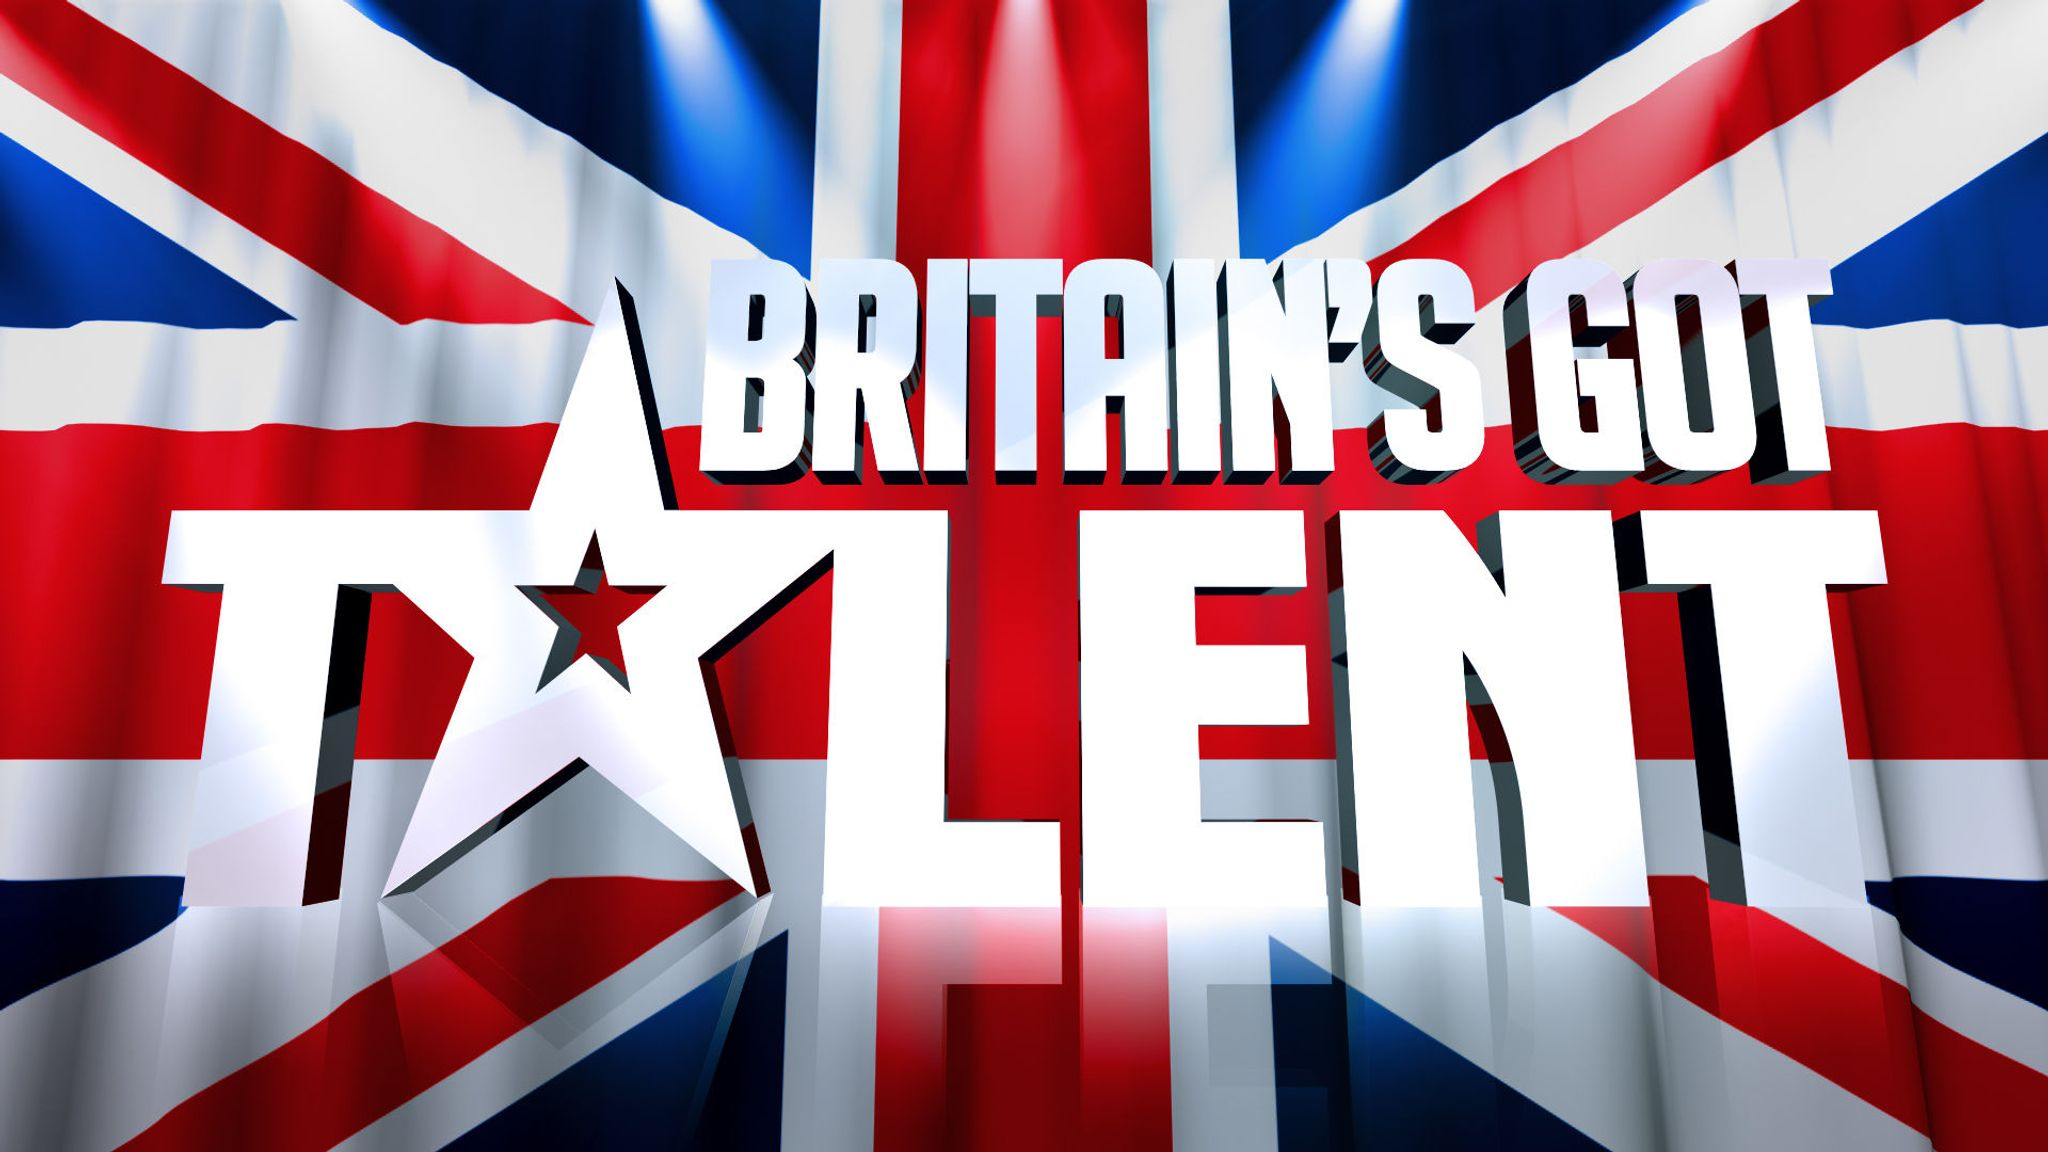 In one BGT episode kids force-fed over four minutes of junk food adverts